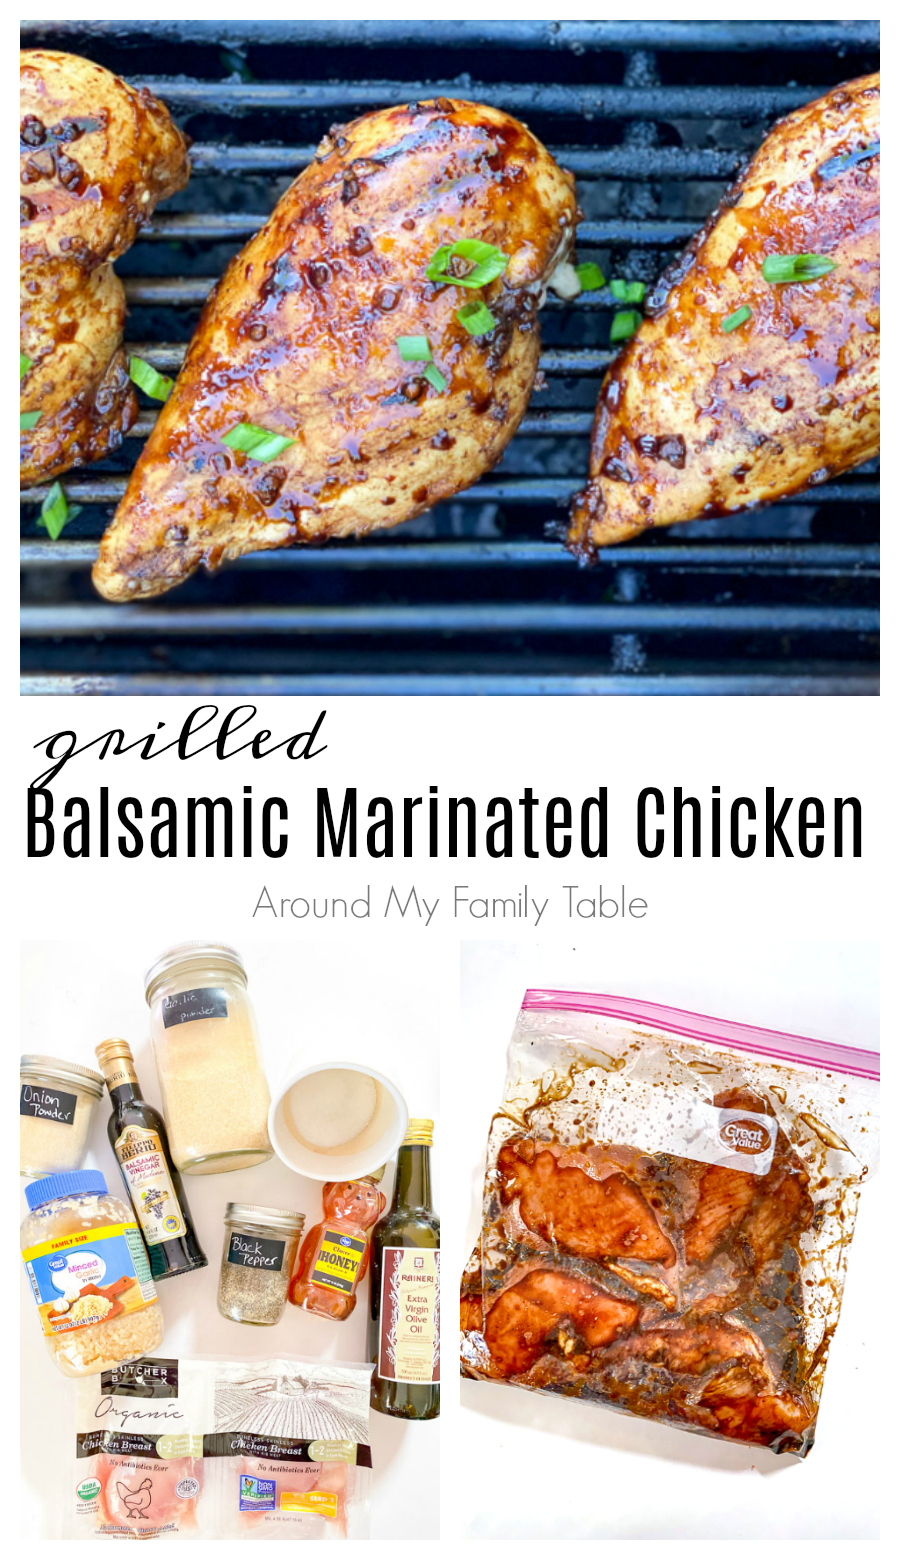 A delicious balsamic marinated chicken that is perfectly grilled! via @slingmama